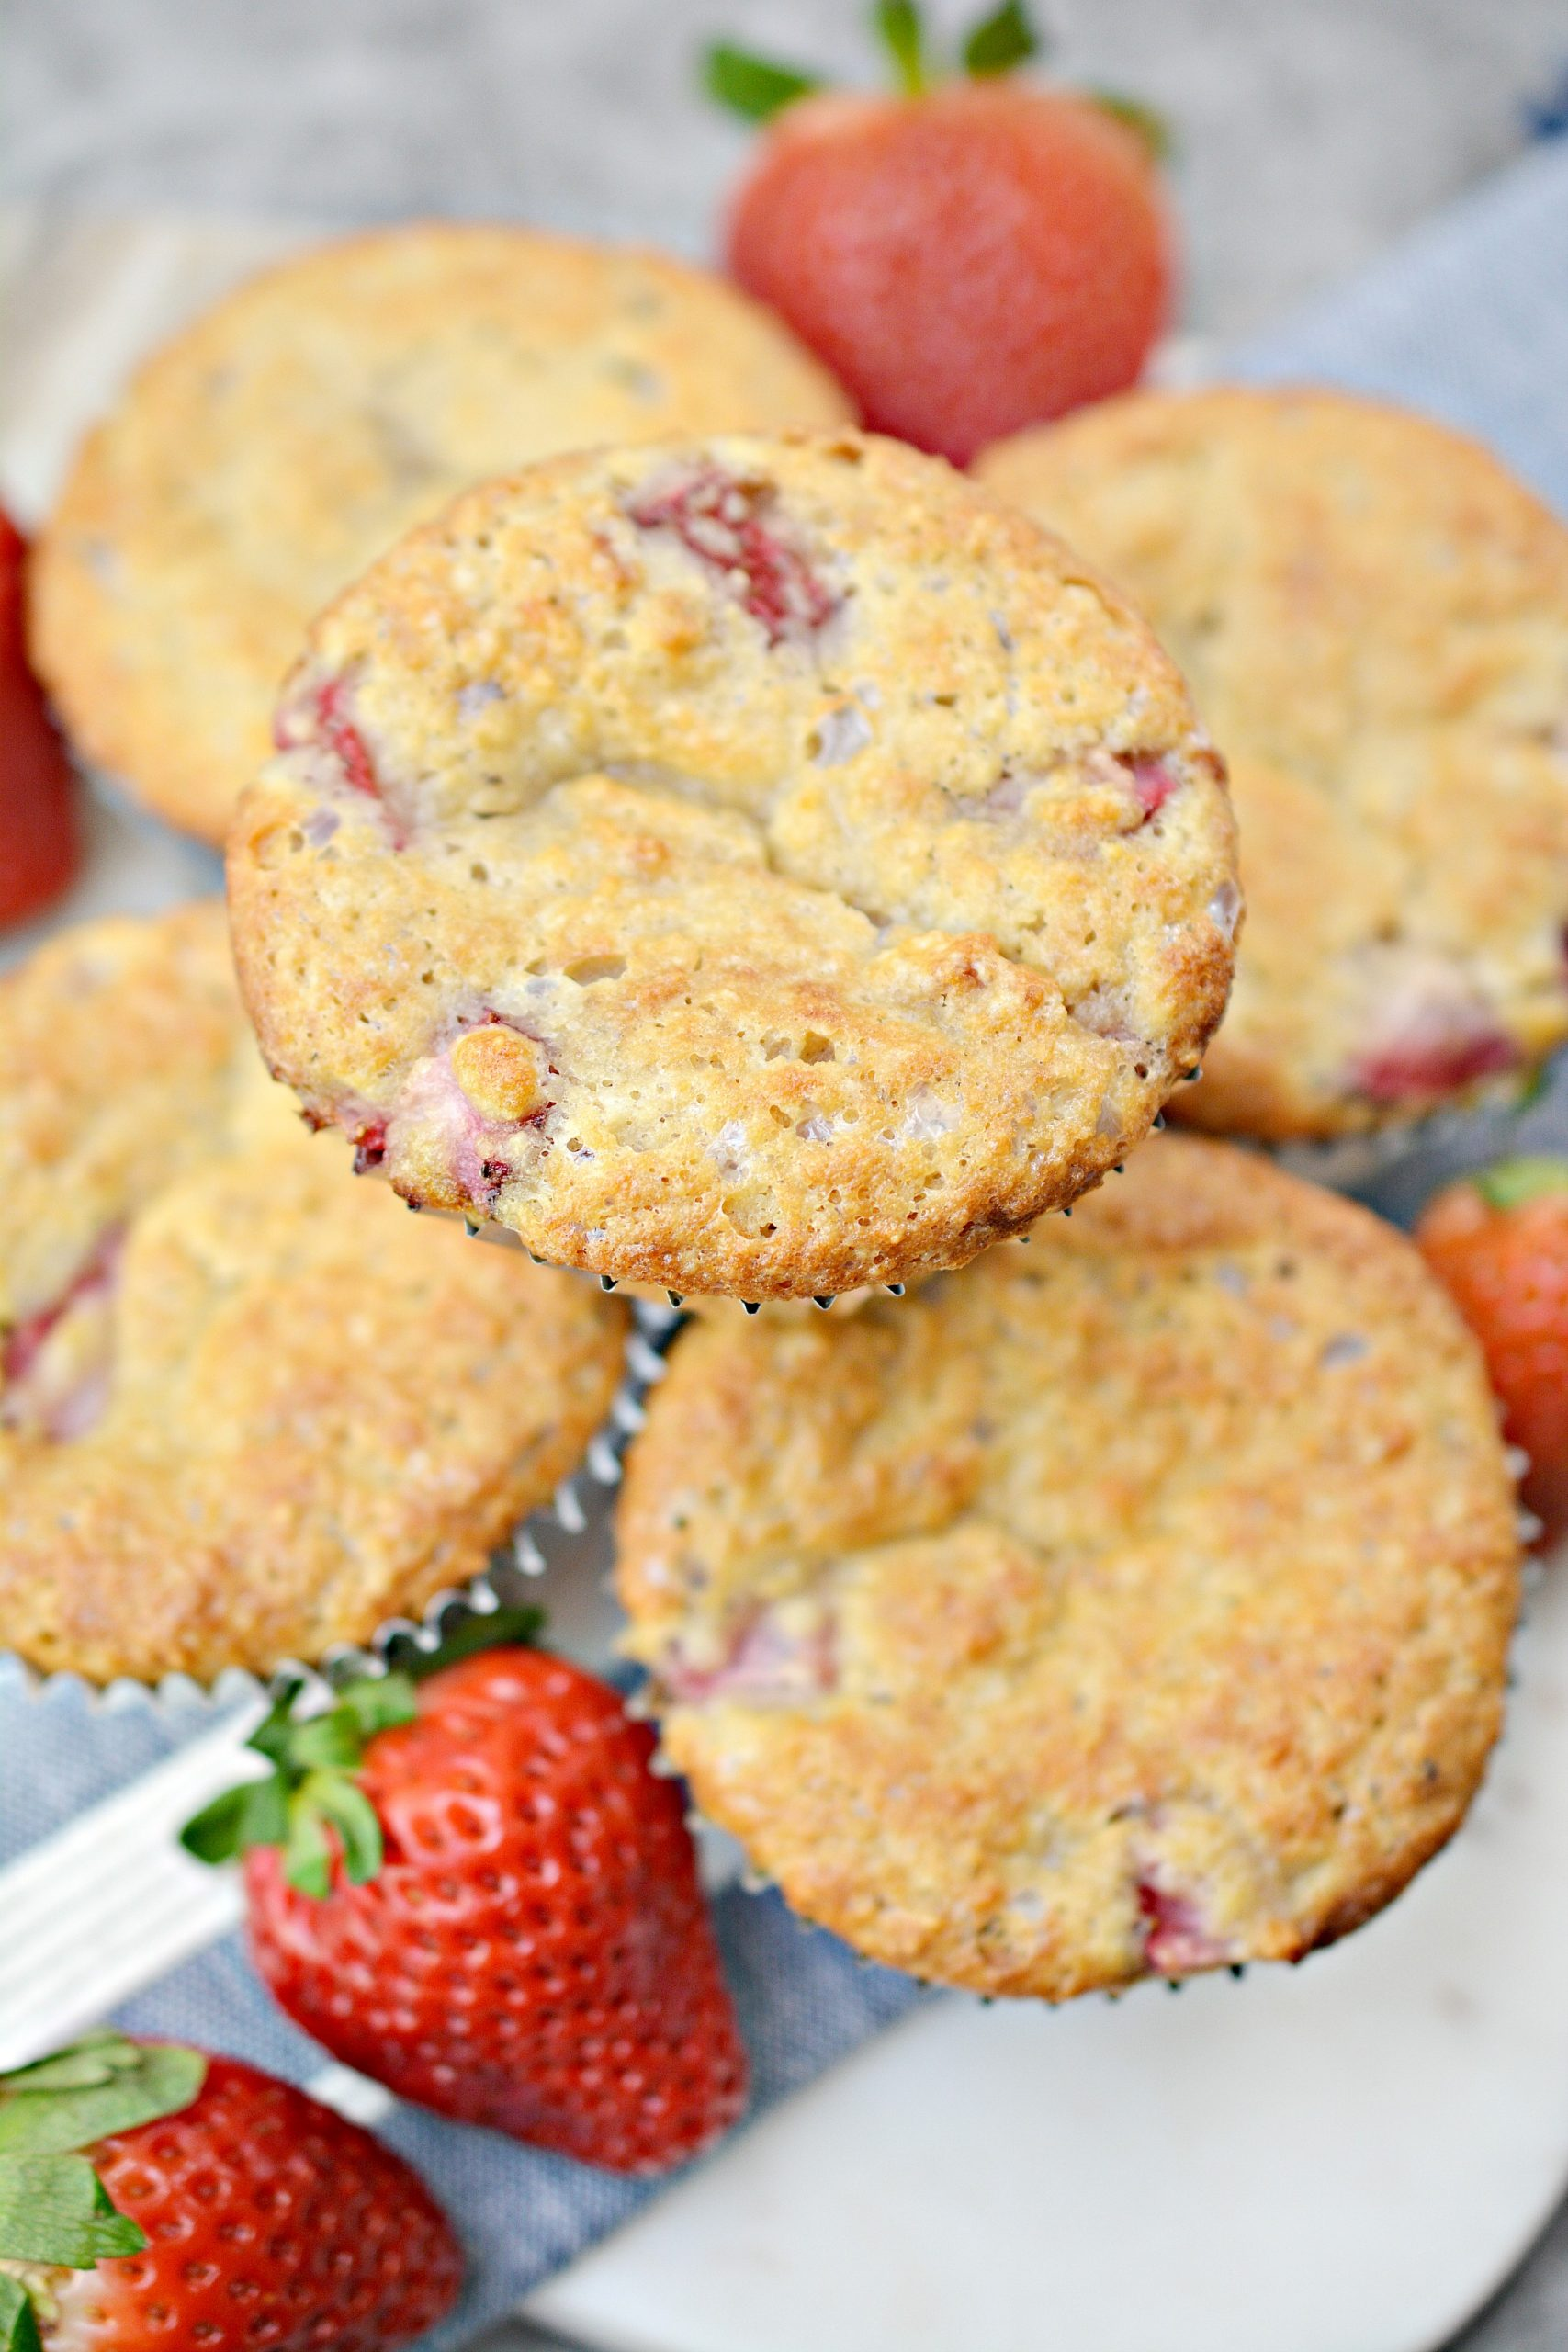 Low carb strawberry muffin recipe.